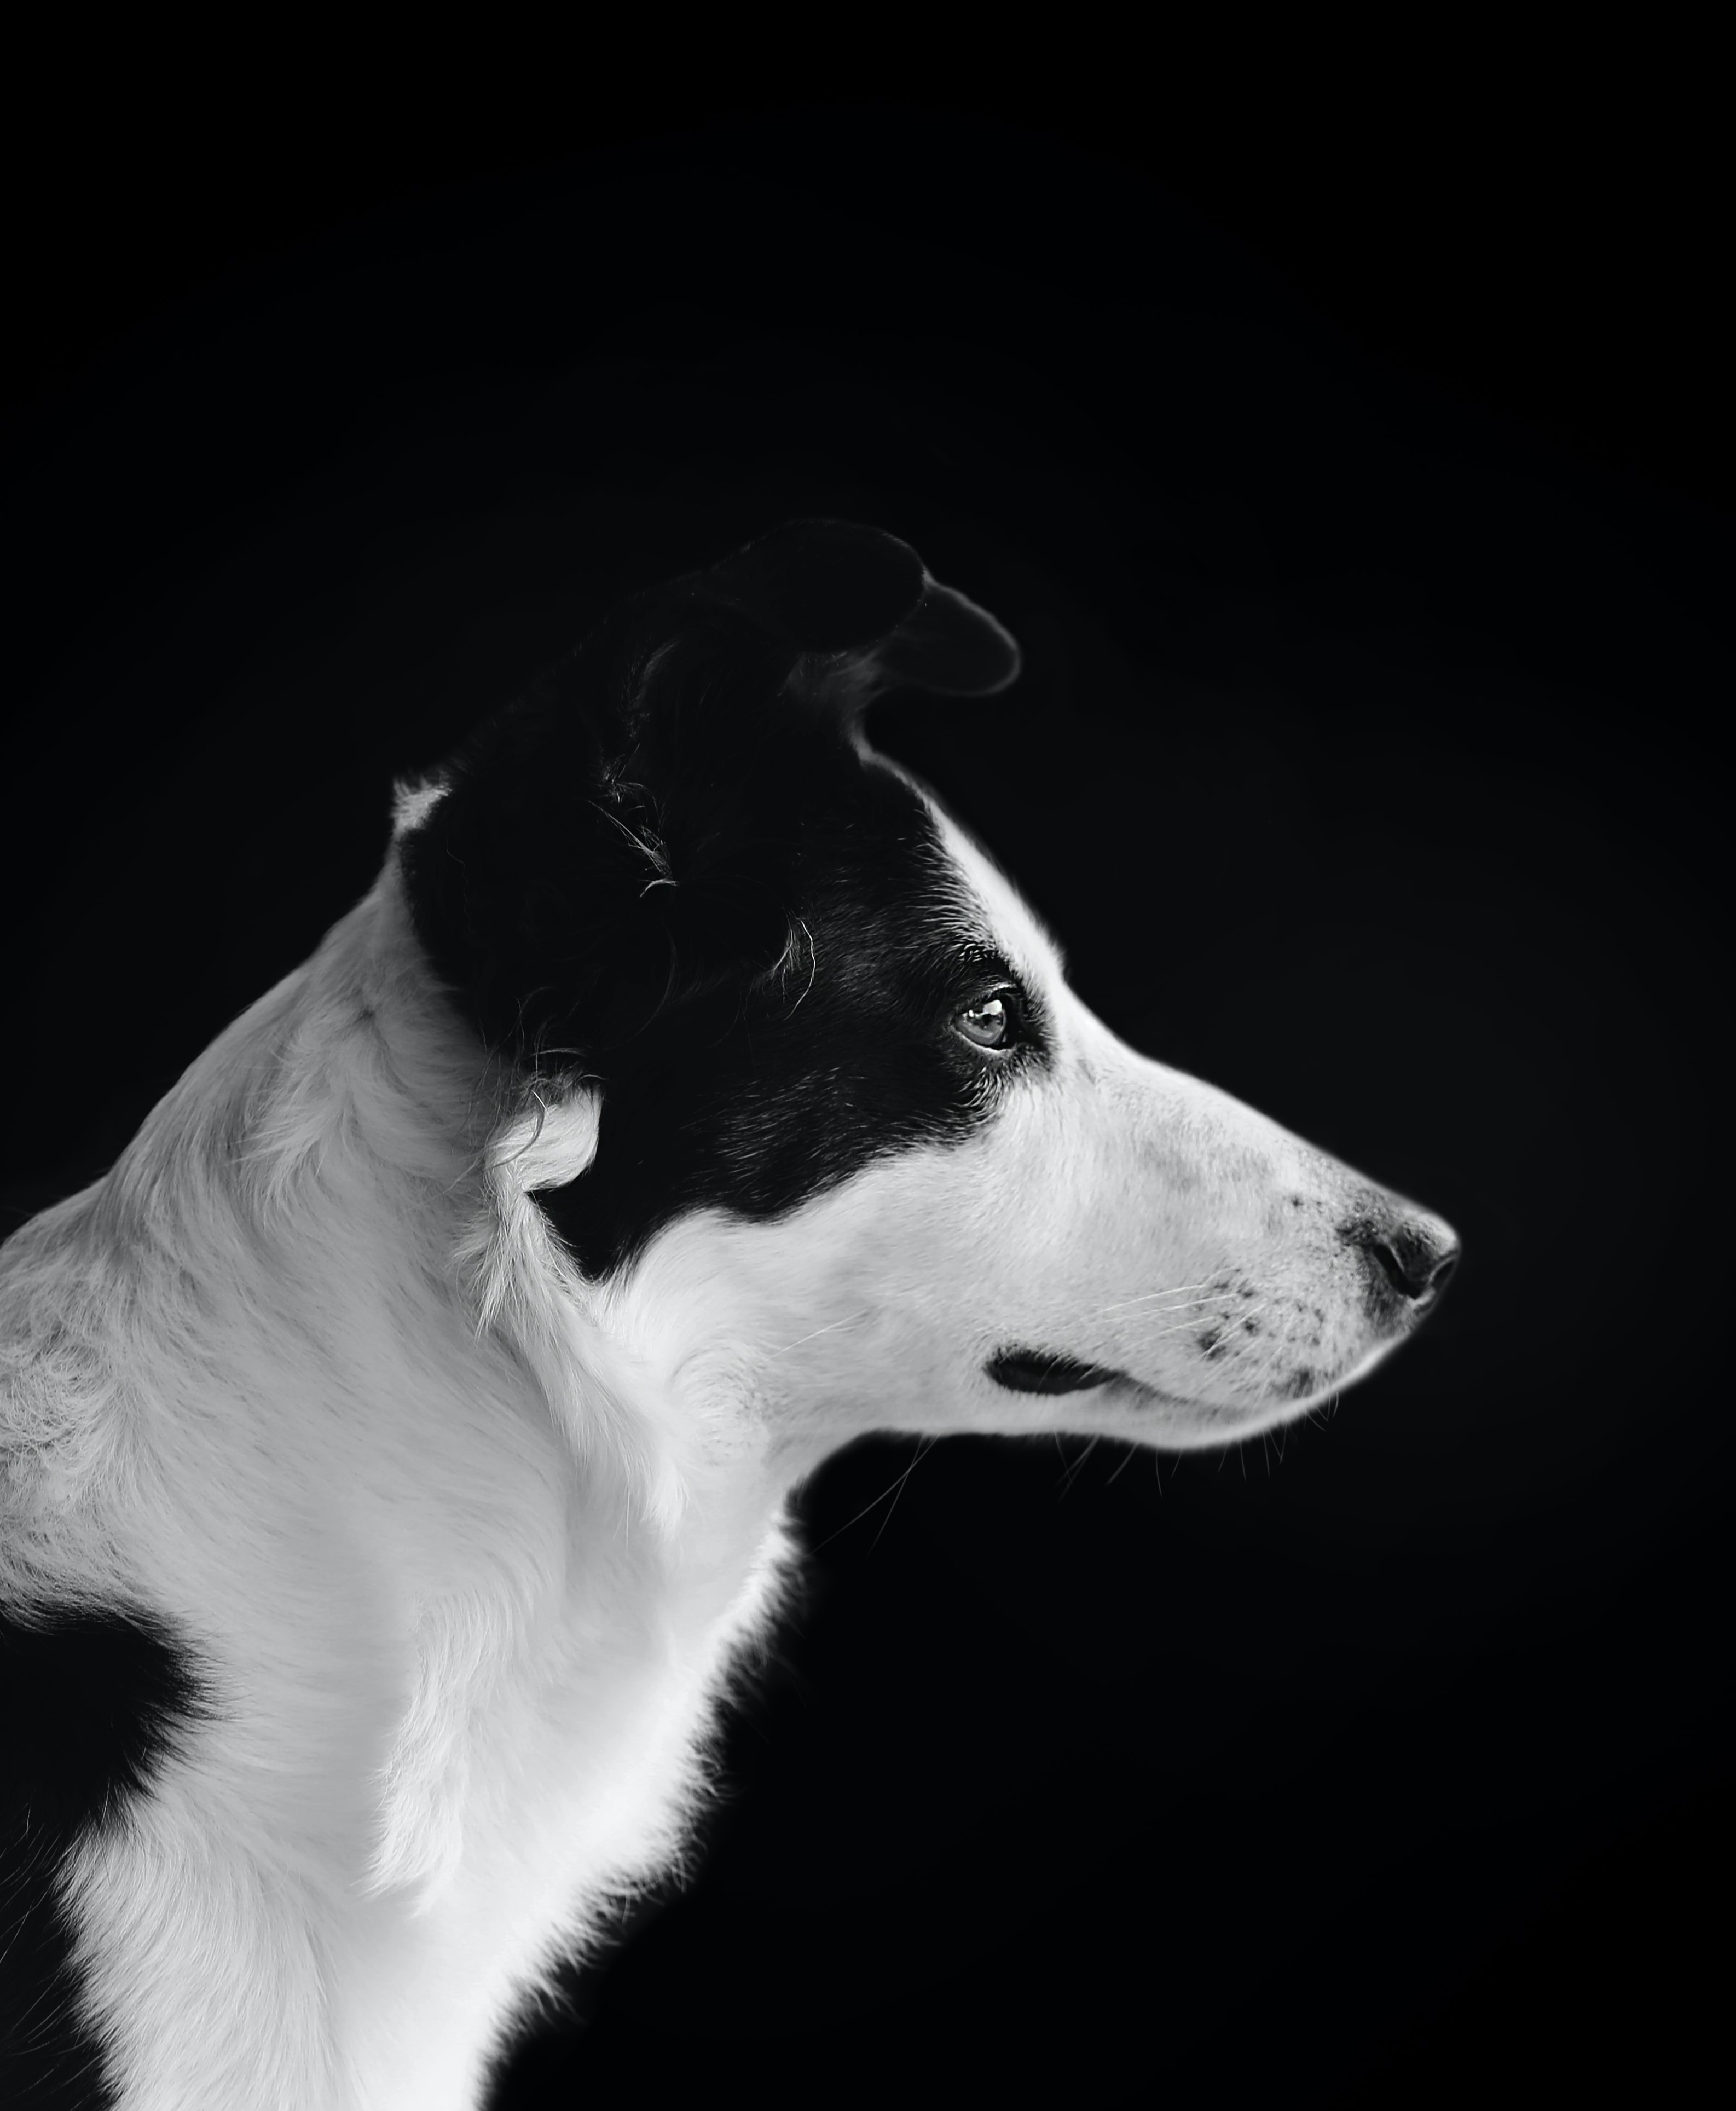 black and white shot of a dog portrait